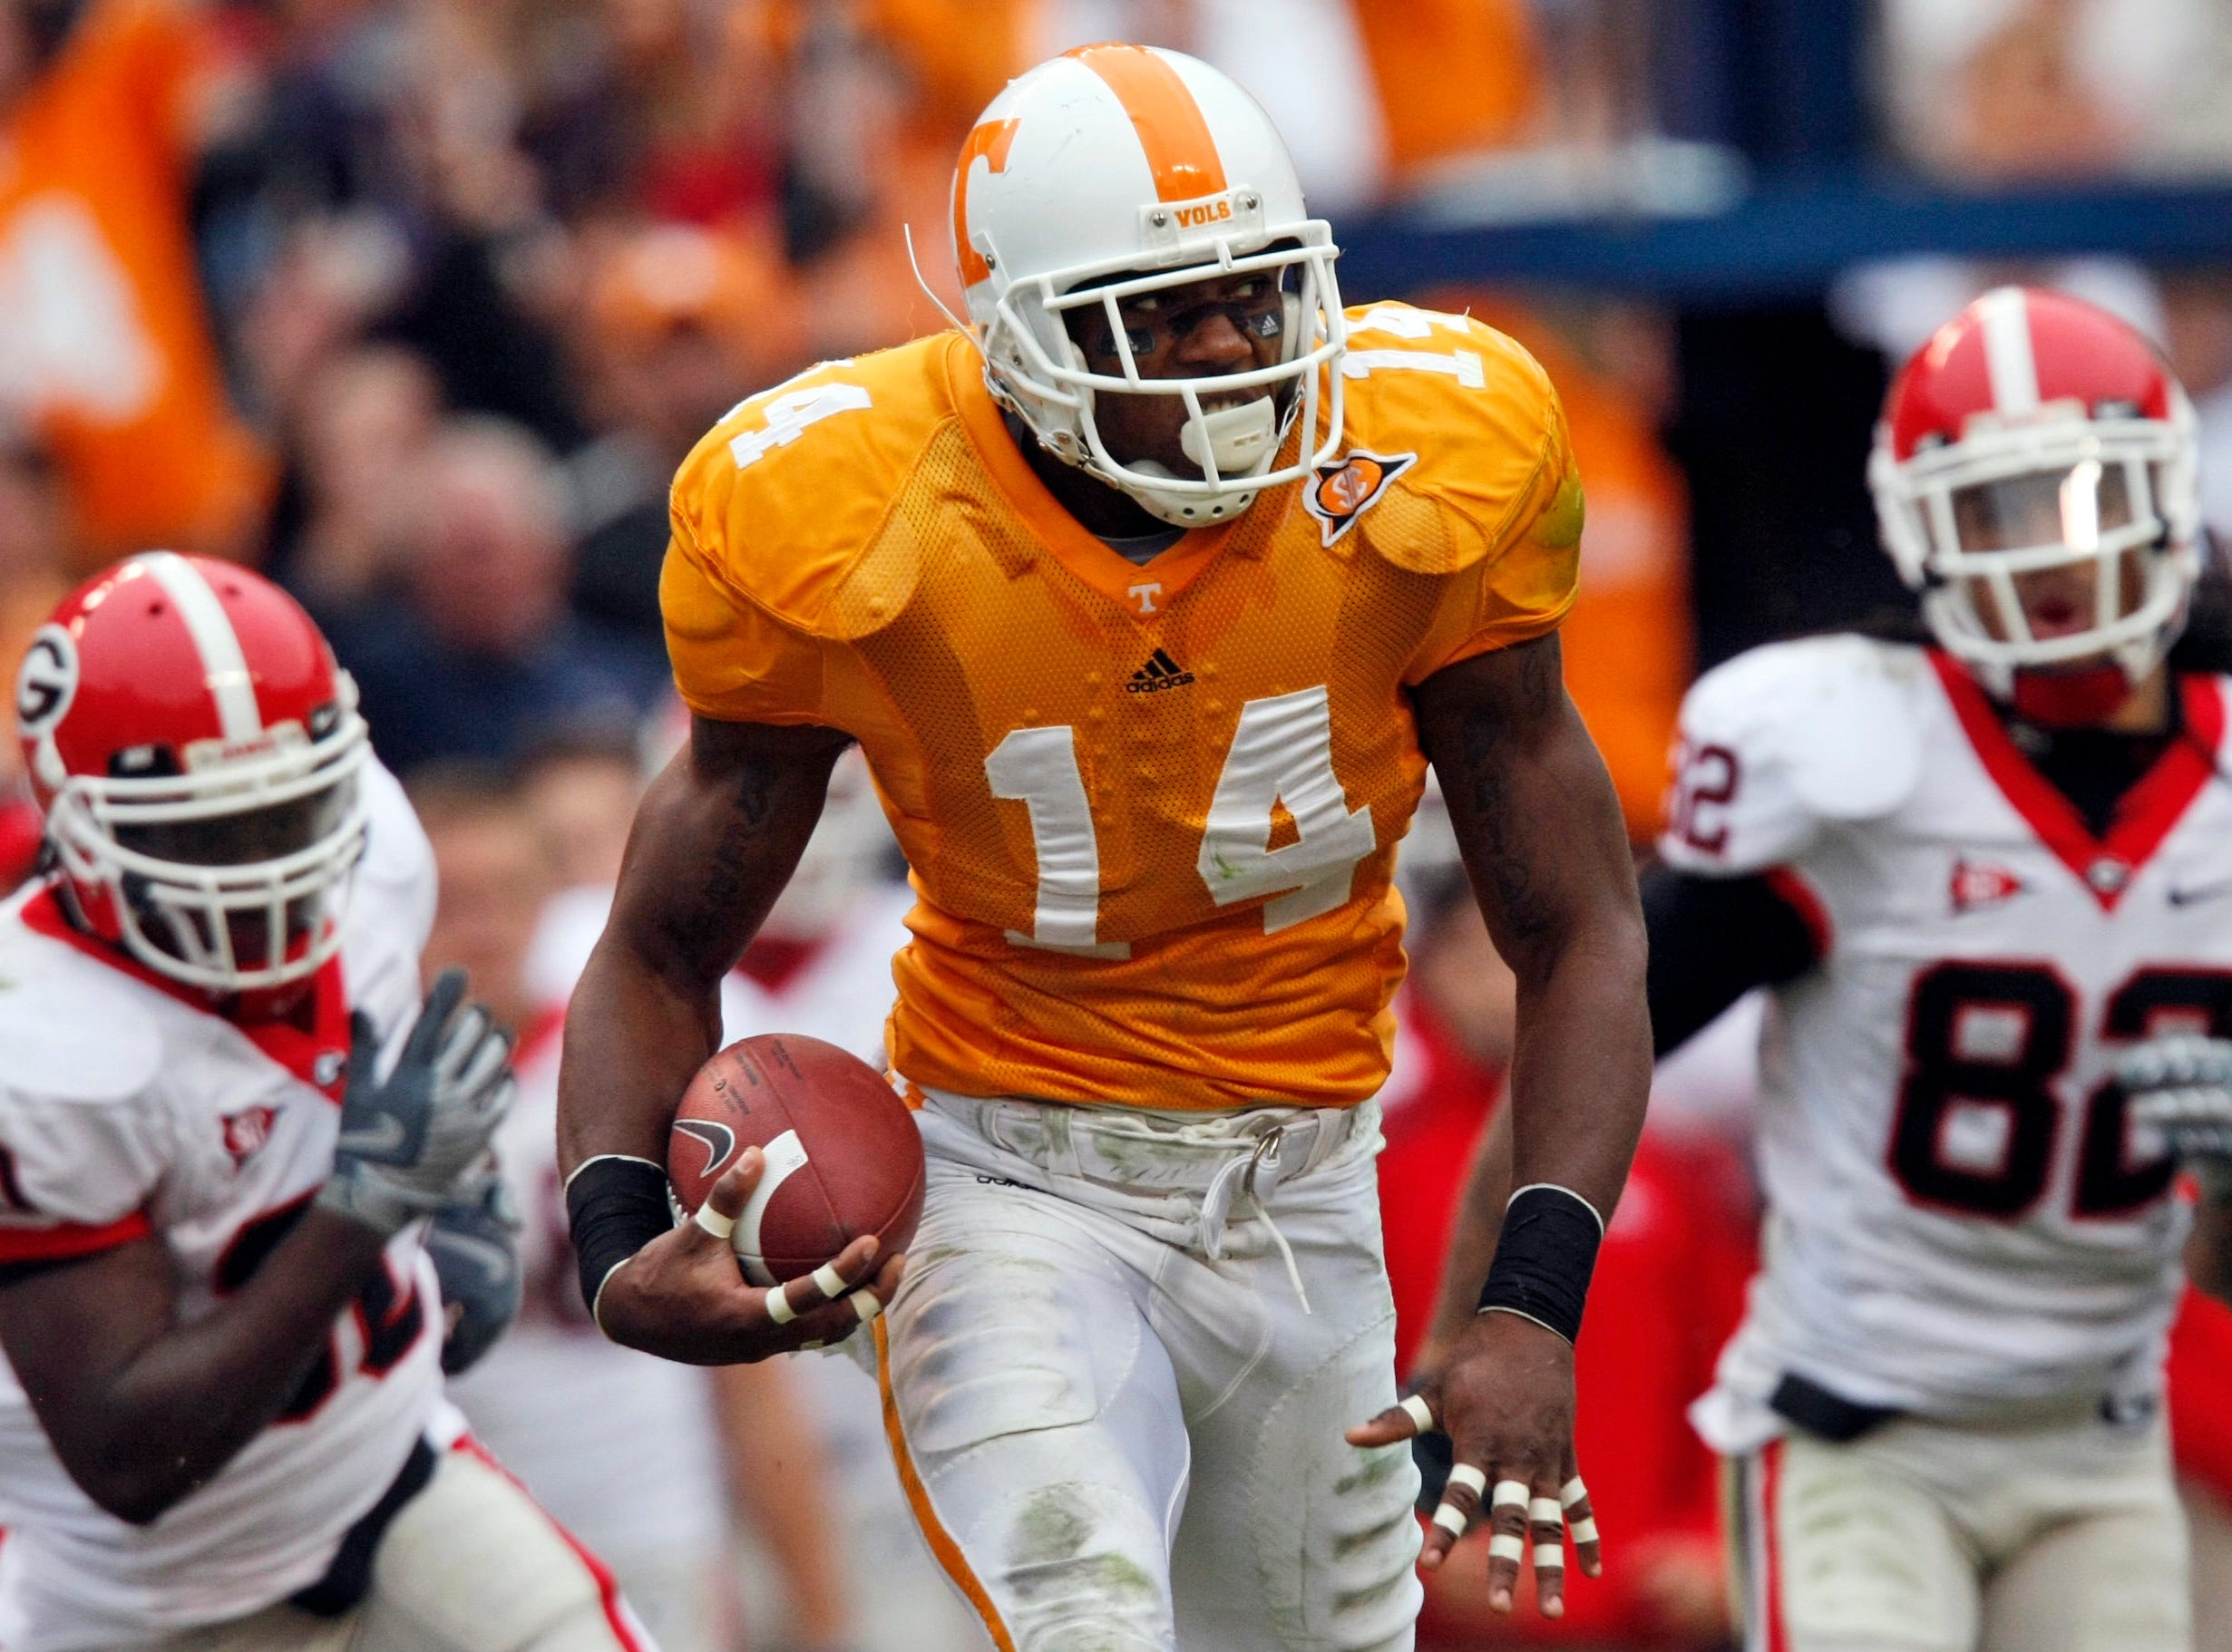 In this Oct. 10, 2009, file photo, Tennessee's Eric Berry (14) returns a fumble as he gets away from Georgia's Michael Moore (82) and Eric Elliot (30) during the second half of an NCAA college football game in Knoxville, Tenn.  Berry is a top prospect in the NFL draft.